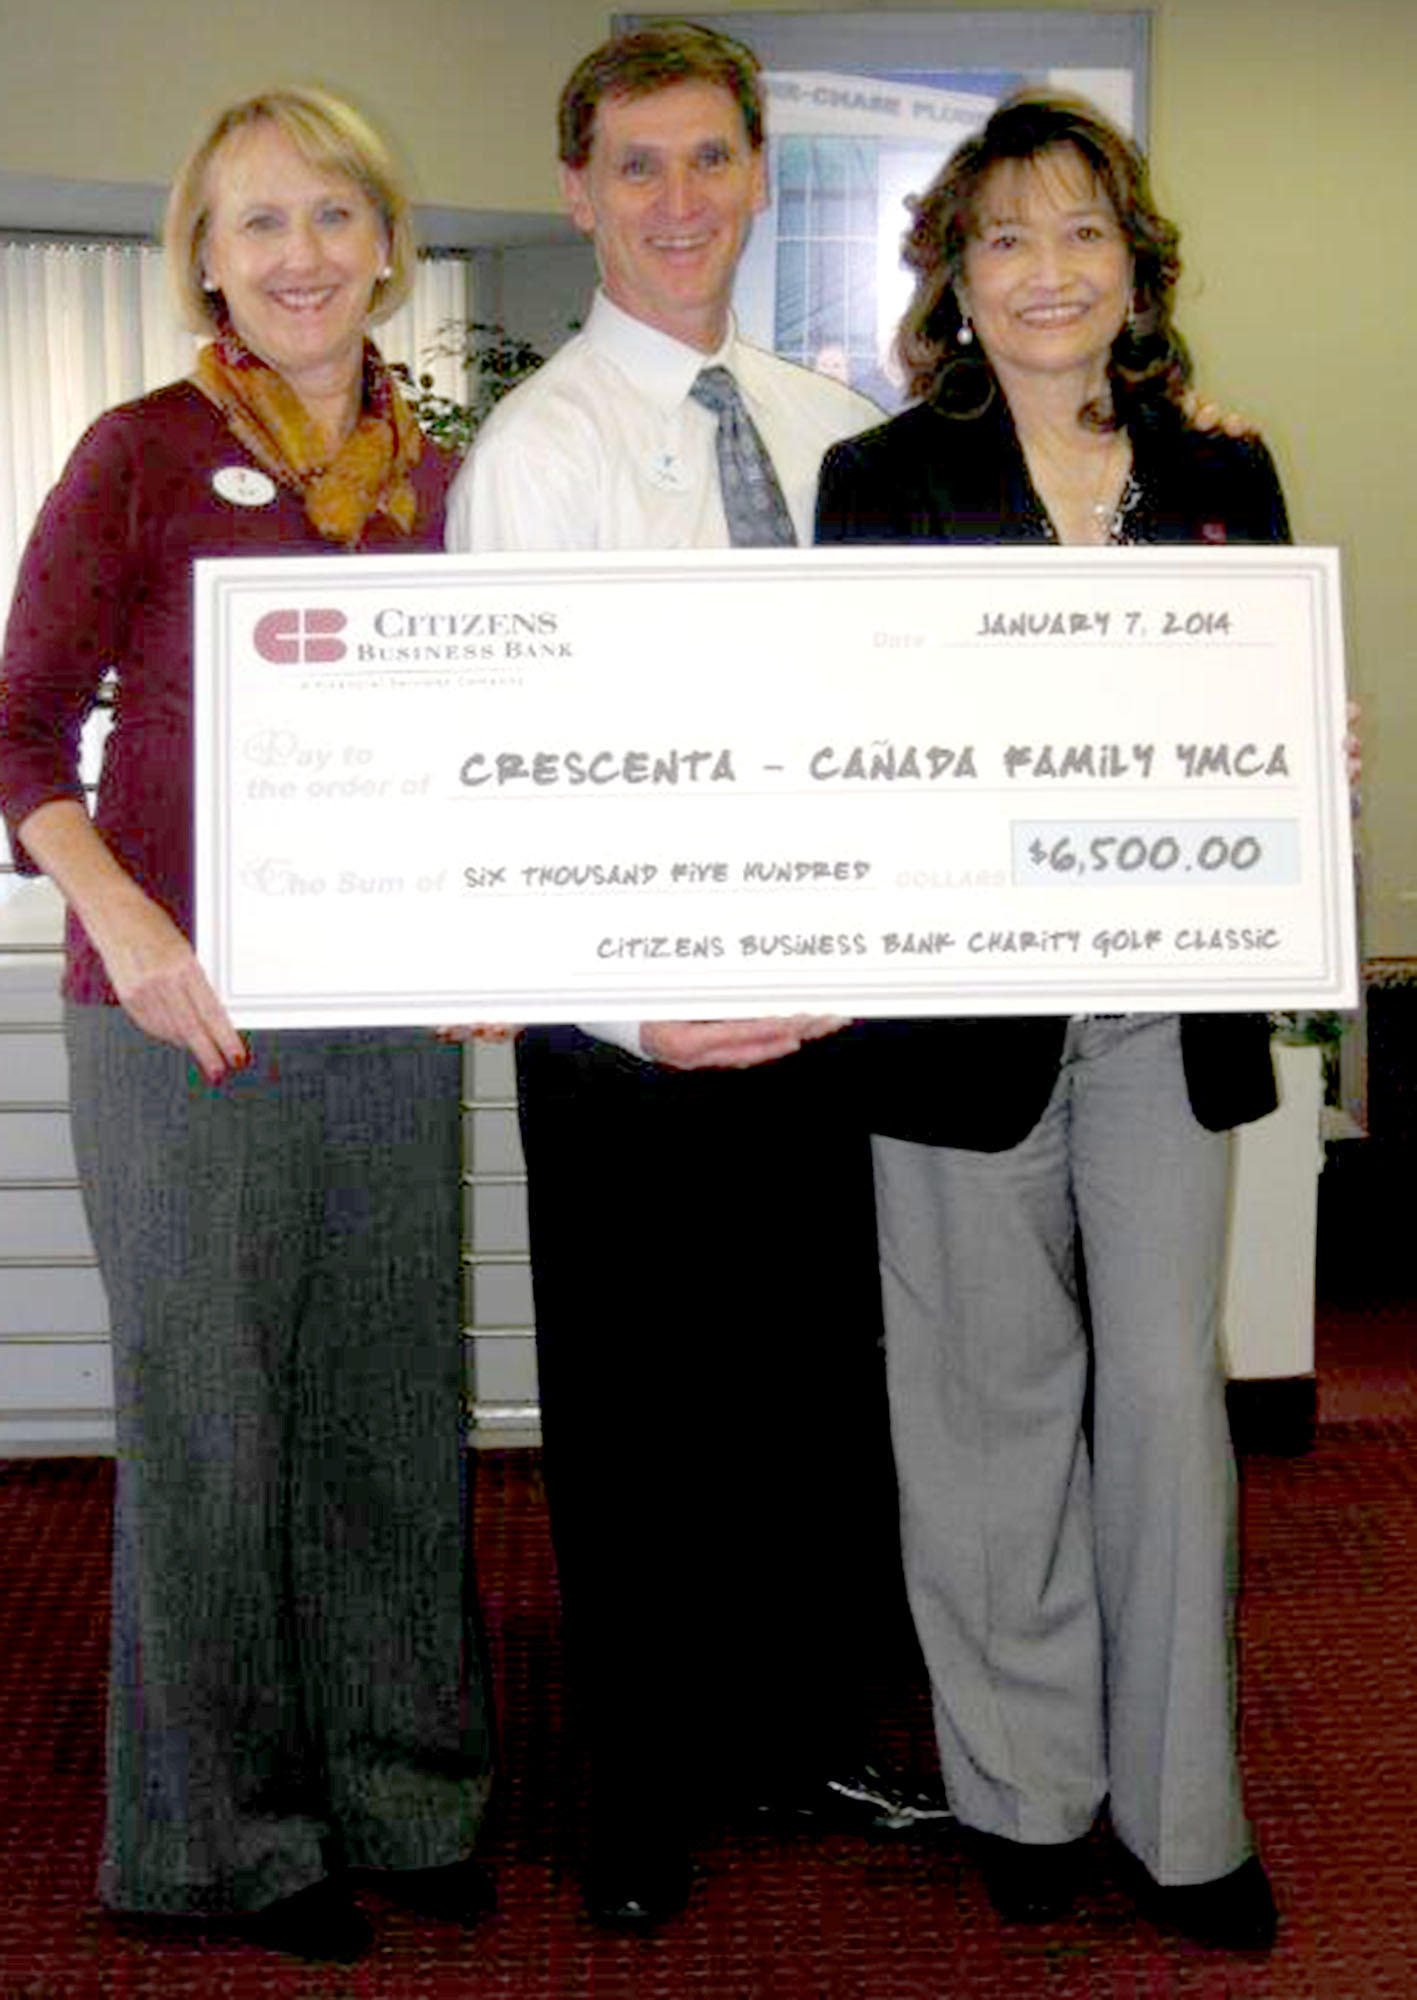 Kim Beattie and Tyler Wright, from left, accept a check made out to the Crescenta-Canada Family YMCA from Emelita S.L. Bituin, vice president and manager of the Citizens Business Bank in La Cañada Flintridge. The $6,500 check represents a portion of the funds raised during the 2nd Annual Region 3 Citizens Business Bank Charity Golf Classic held in October at Oakmont Country Club. Proceeds are distributed to local nonprofits.